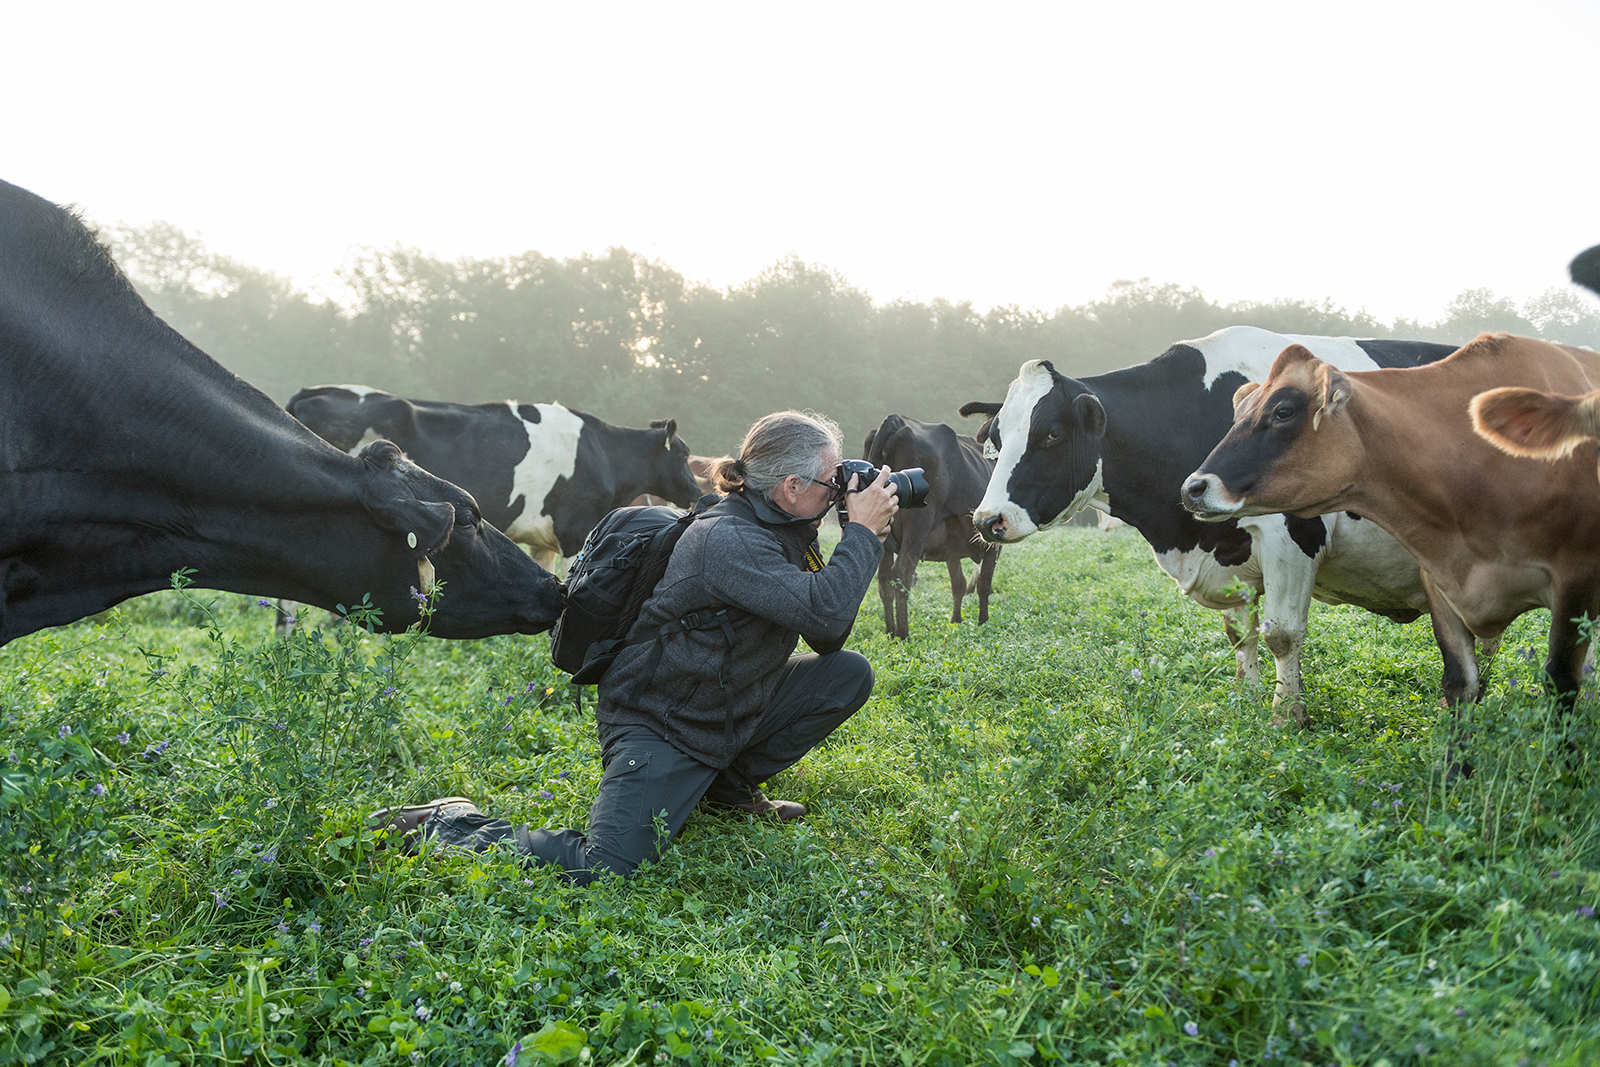 A curious cow sniffs at the photographer's backpack while he's taking a picture in a different direction.